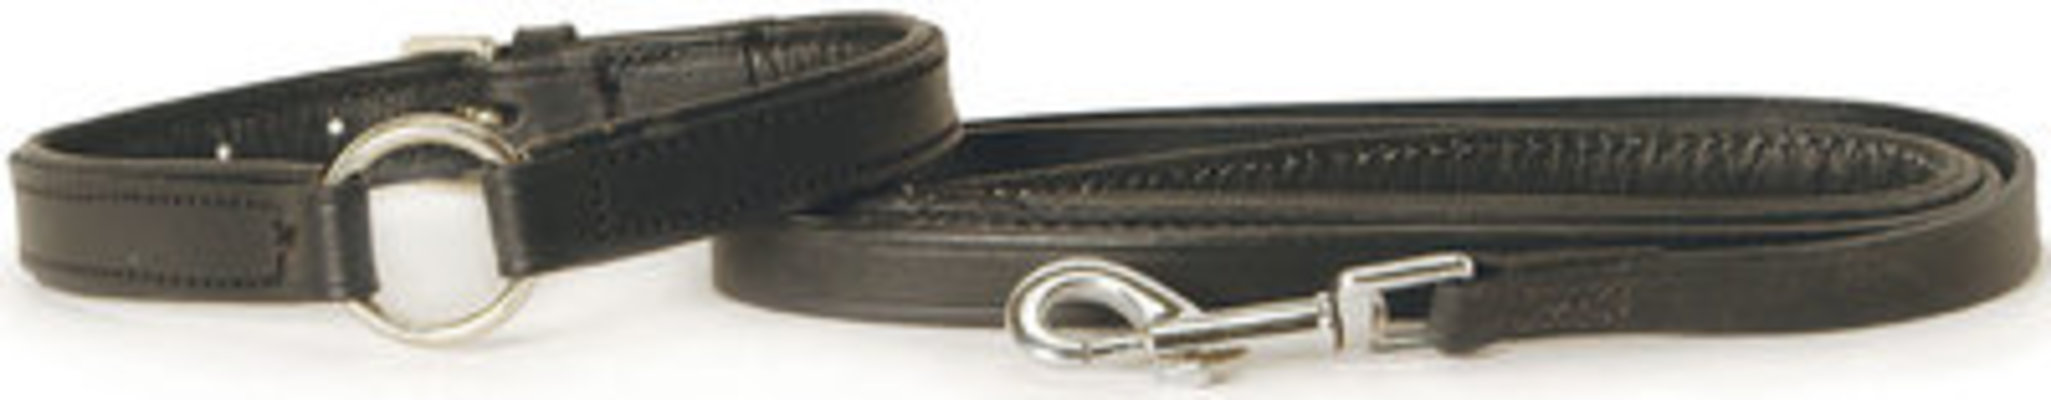 Jeffers Padded Leather Dog Leashes